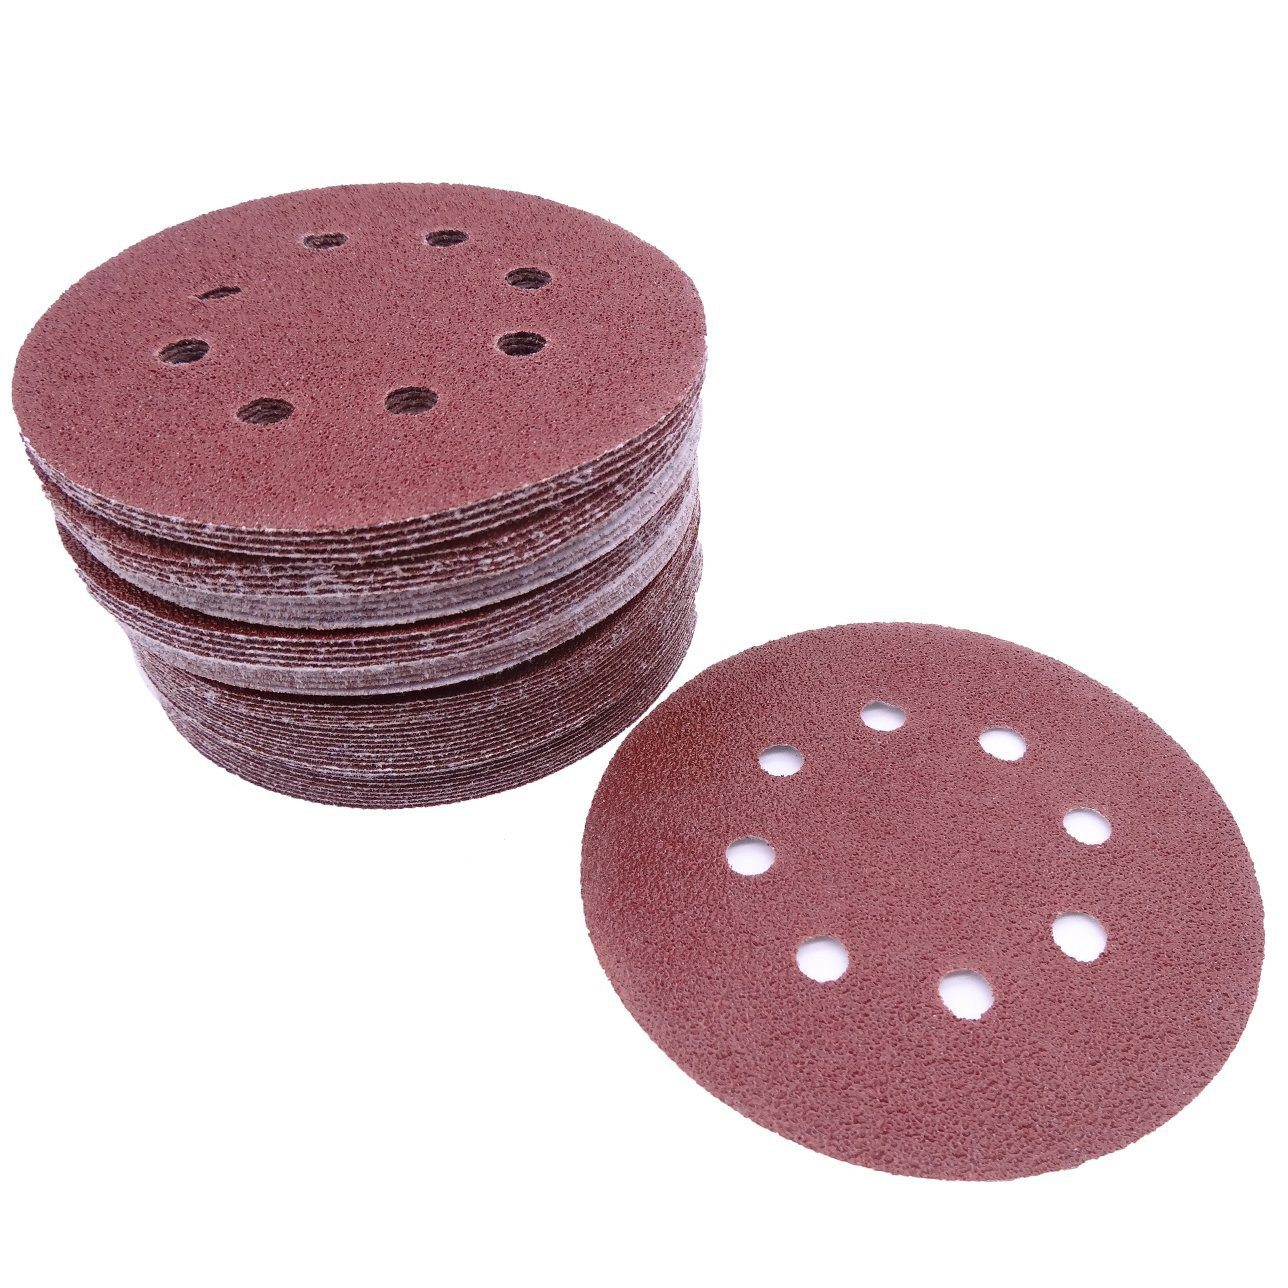 Hot Sale 50 Pcs Sanding Discs Pads, 150 Grits 8-Holes Sandpaper Assorted For Random Orbital Sander